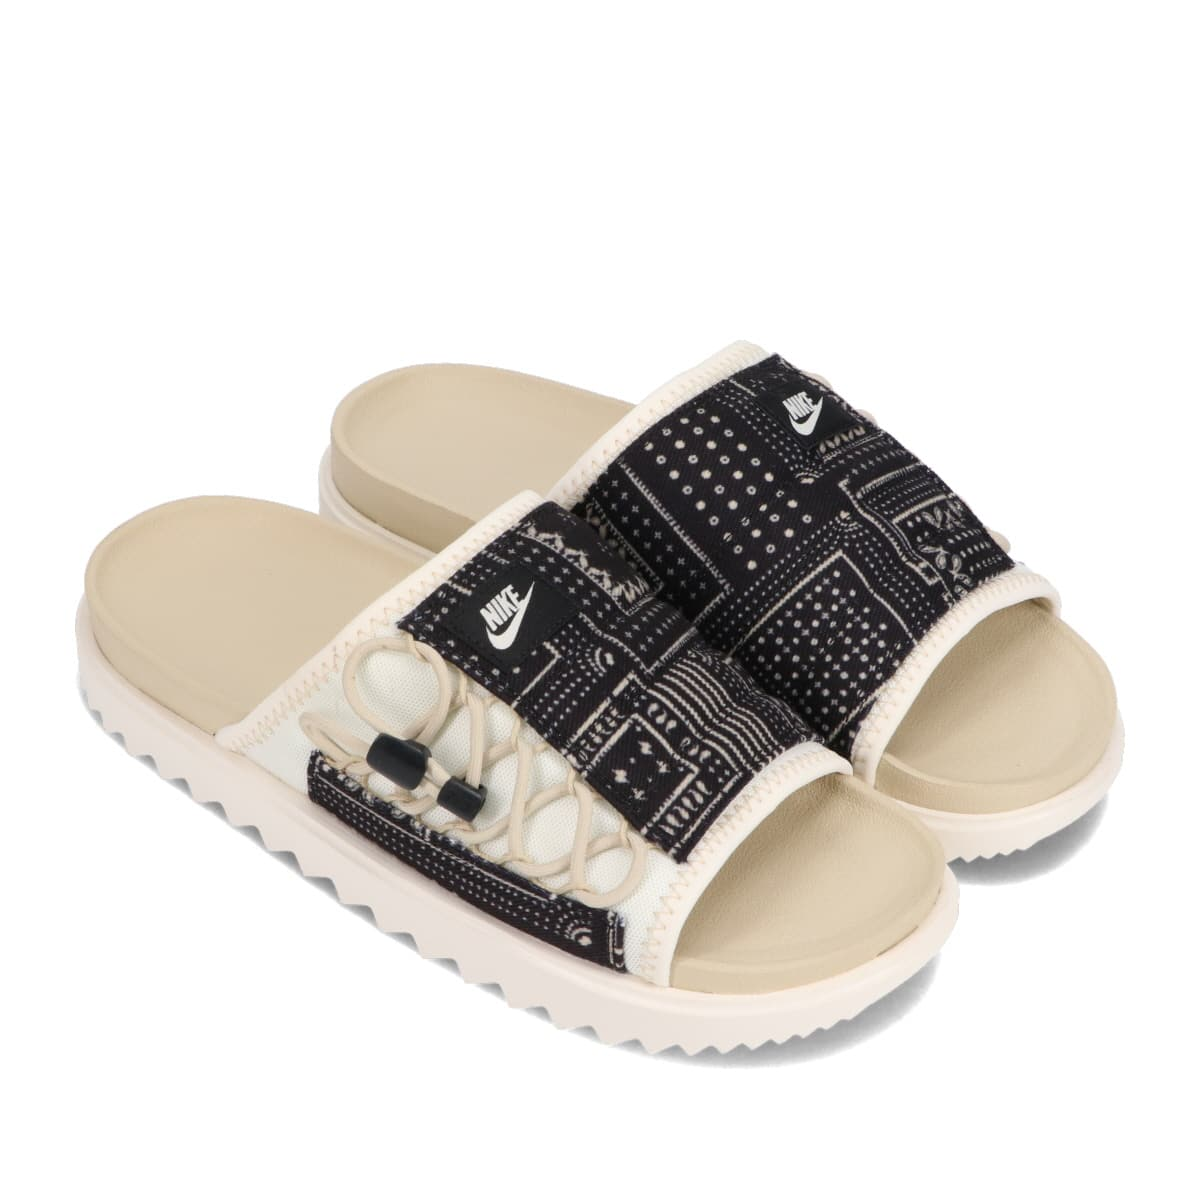 NIKE ASUNA SLIDE PALE IVORY/RATTAN-BLACK-RATTAN 21SU-I_photo_large